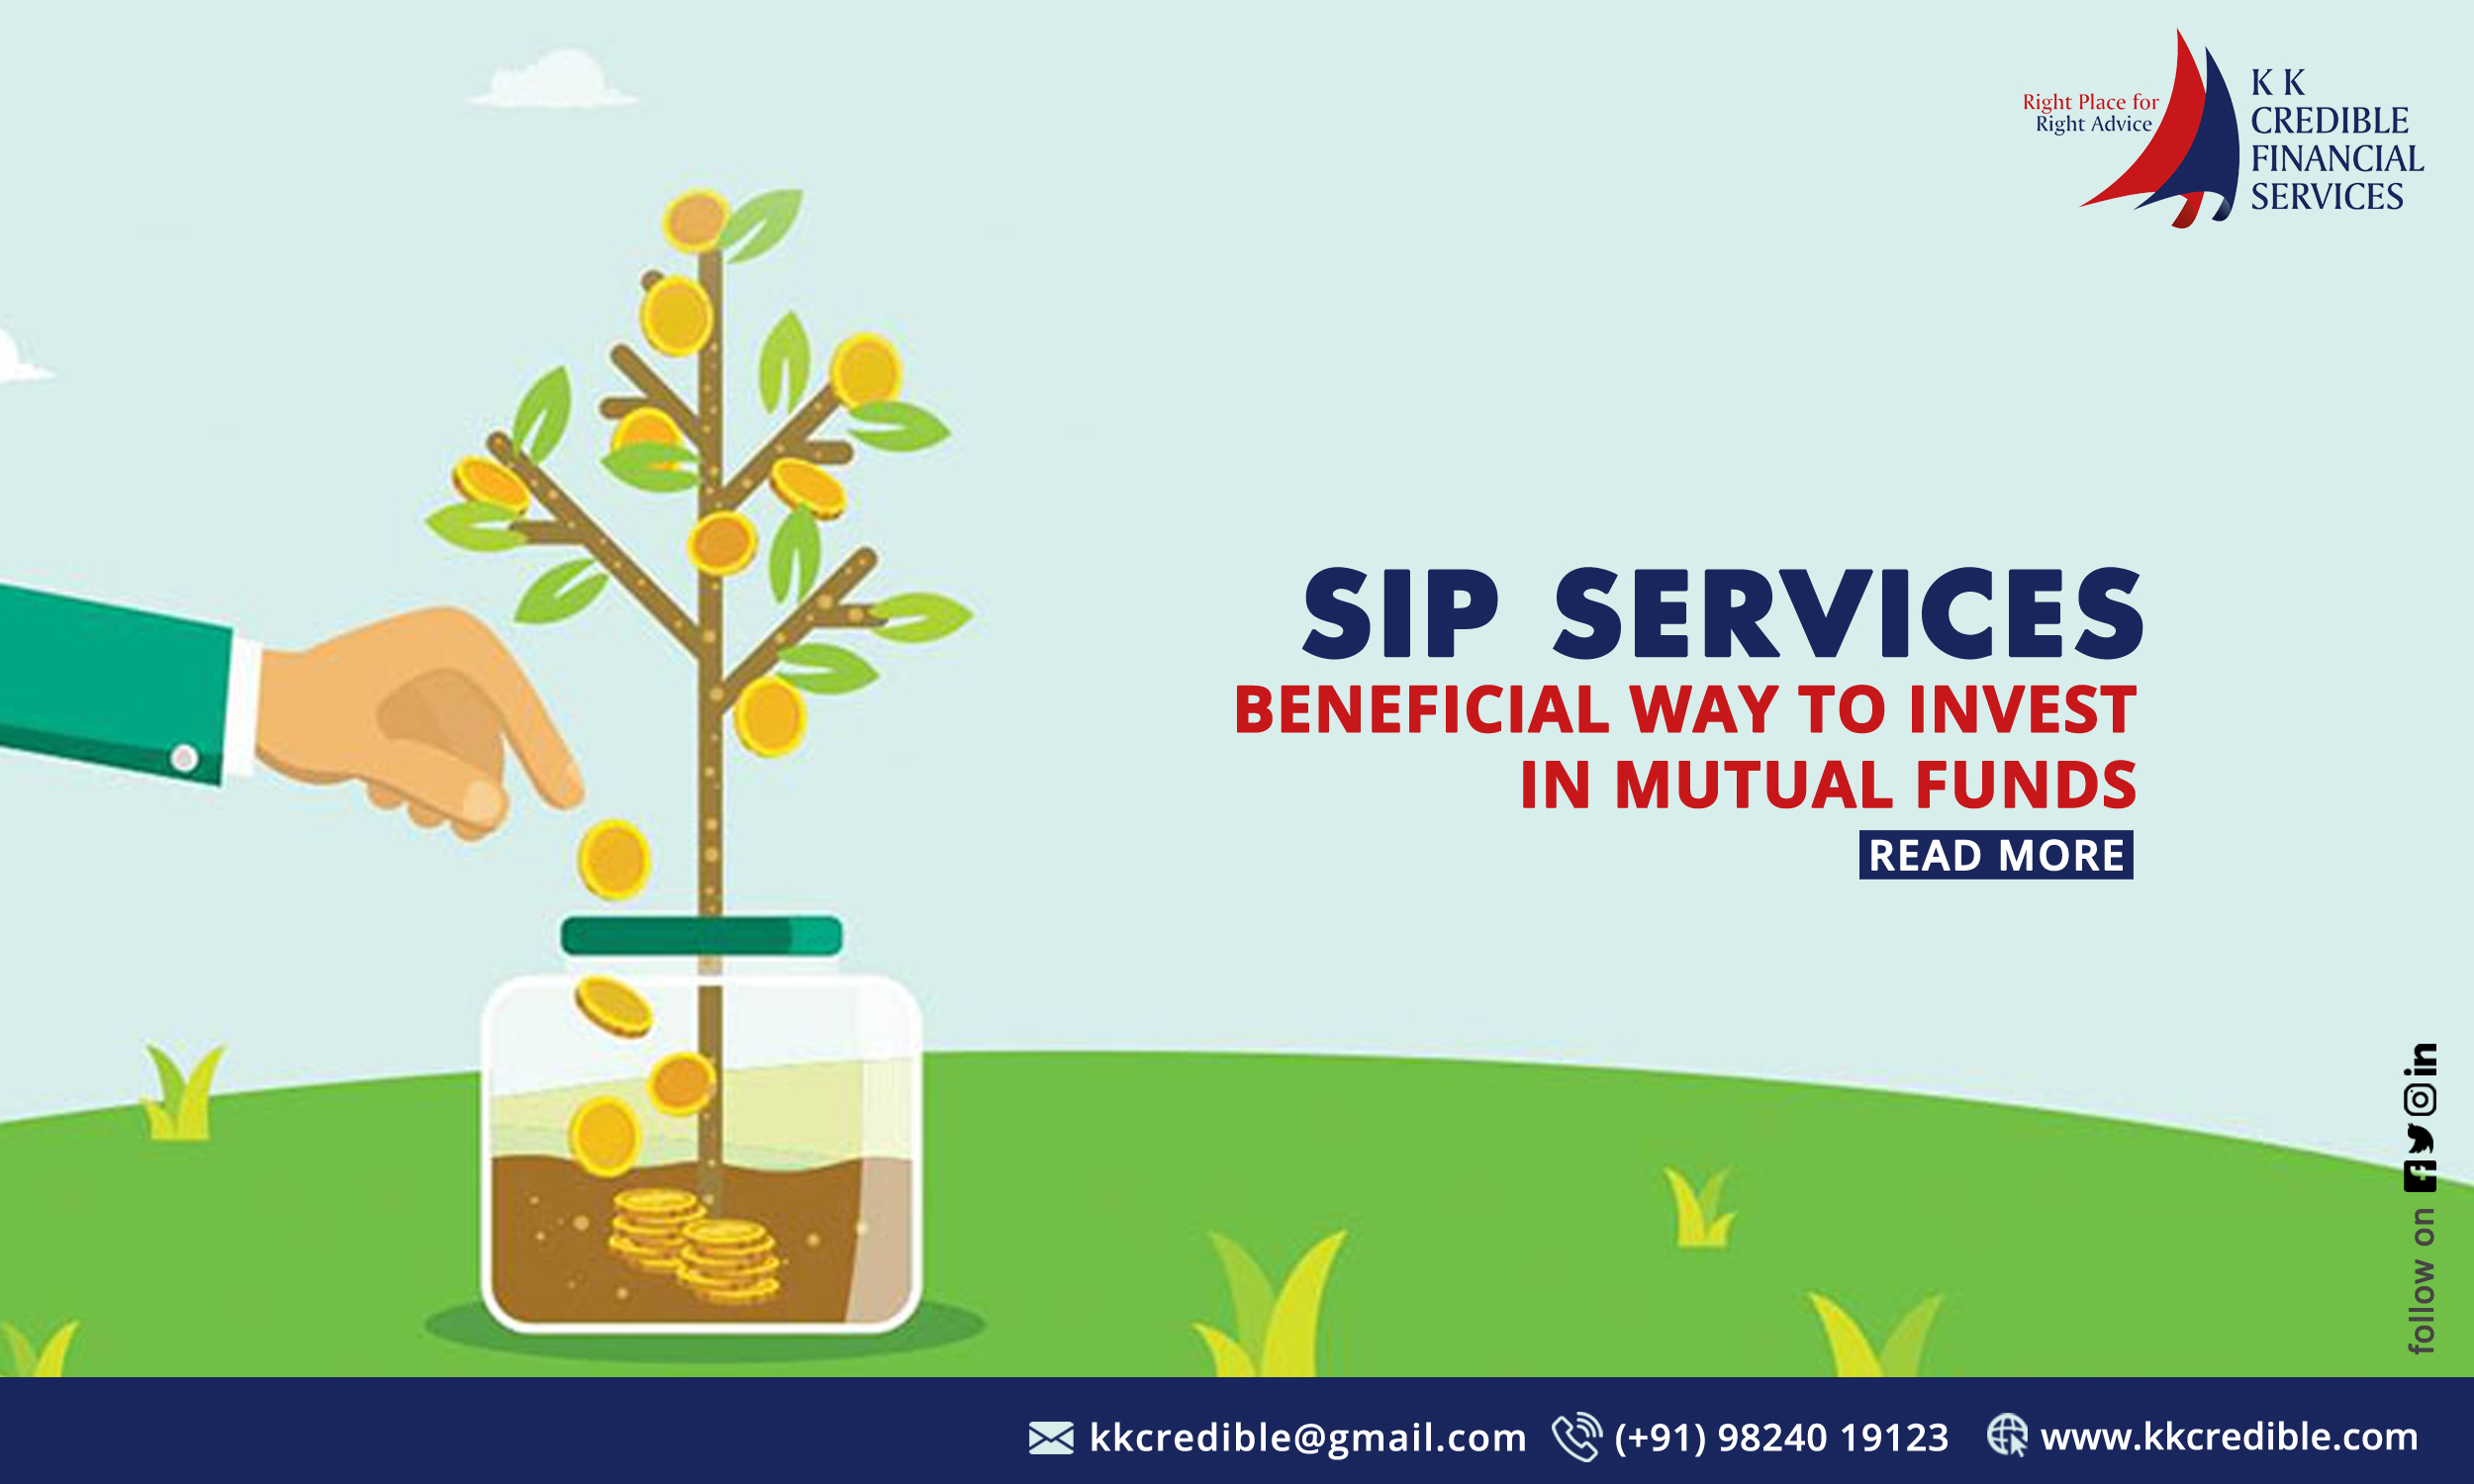 sip-services-beneficial-way-to-invest-in-mutual-funds